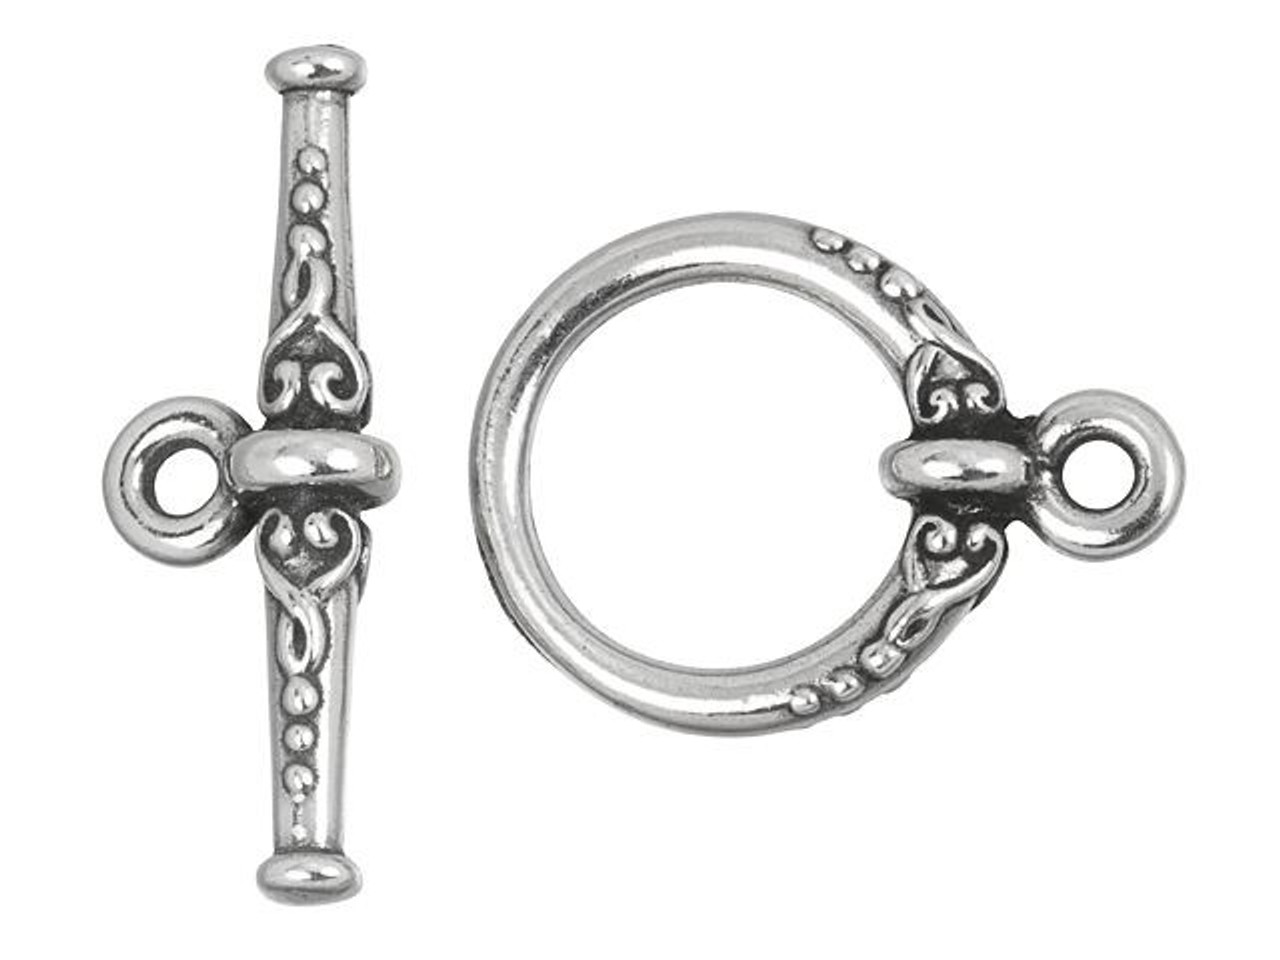 10 Sets #CK532 17mm Antique Silver TierraCast Pewter Bali Toggle Clasp